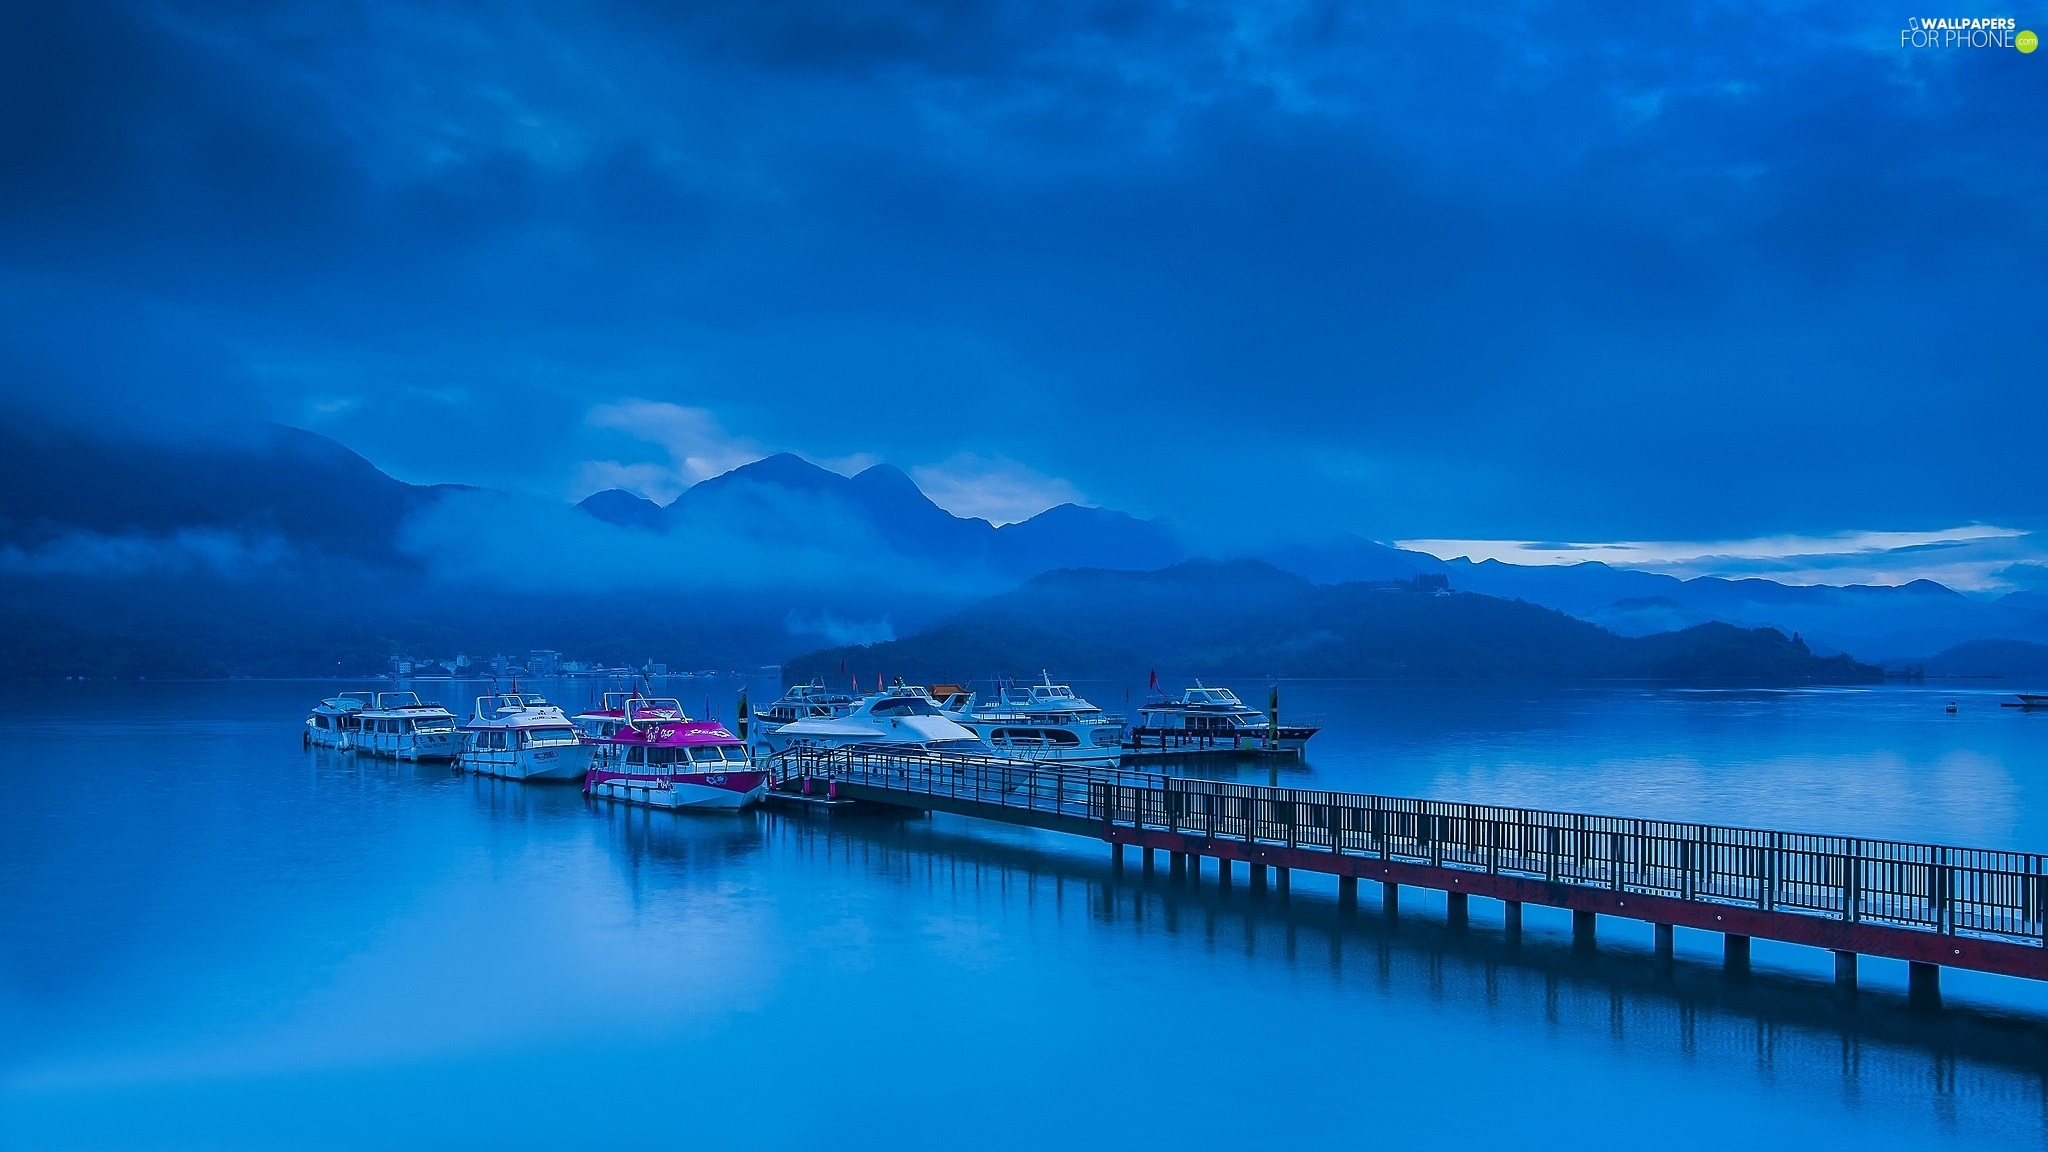 Harbour, Boats, Fog, Platform, Mountains